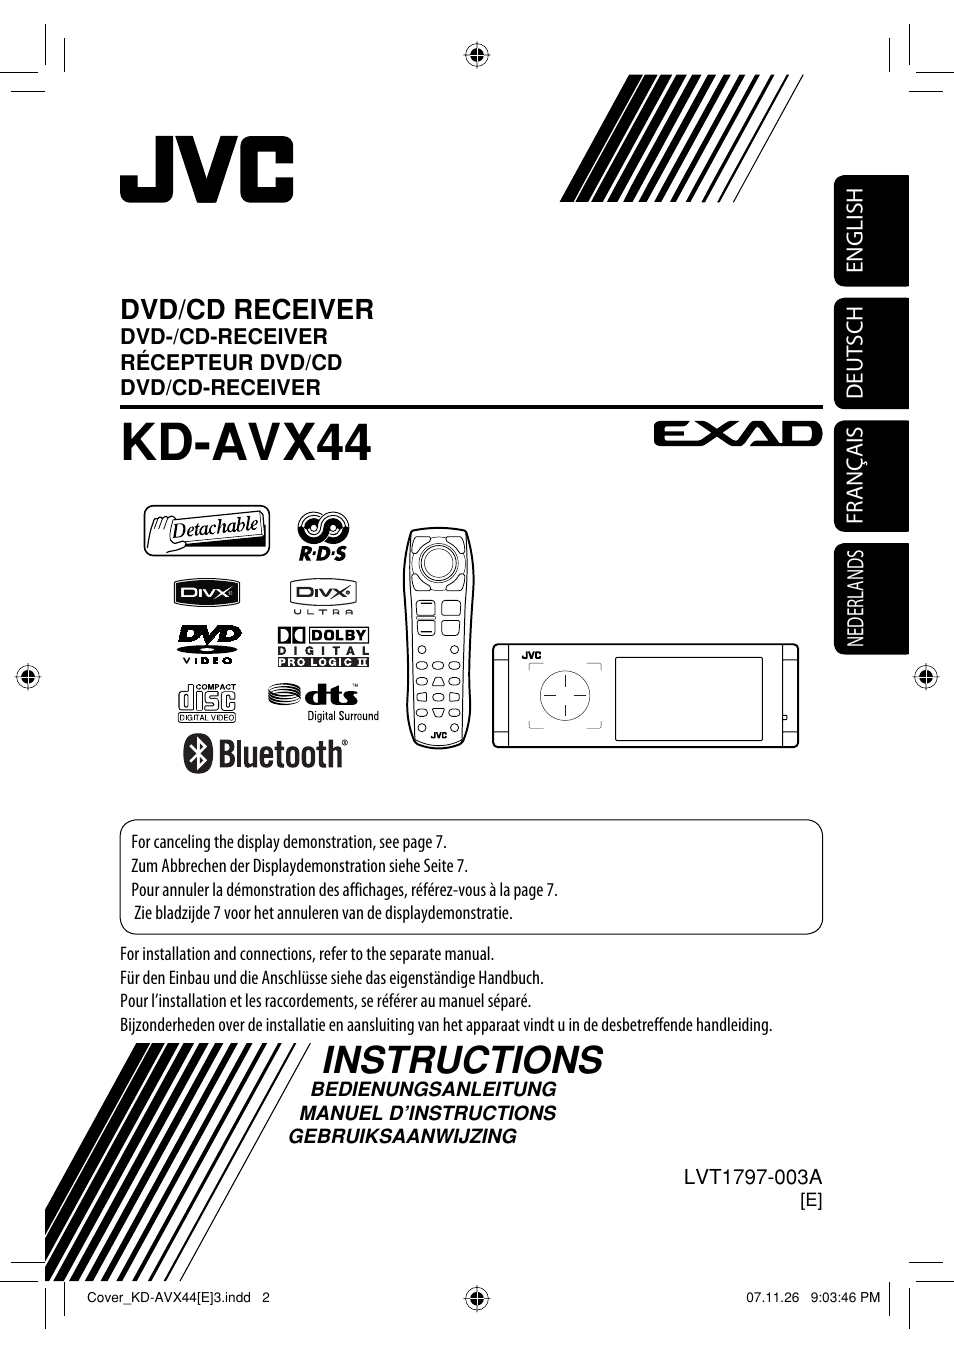 Jvc Car Audio Bluetooth Pairing Code Kdavx44 Wiring Diagram Dvd Player With Lcd Monitor Double